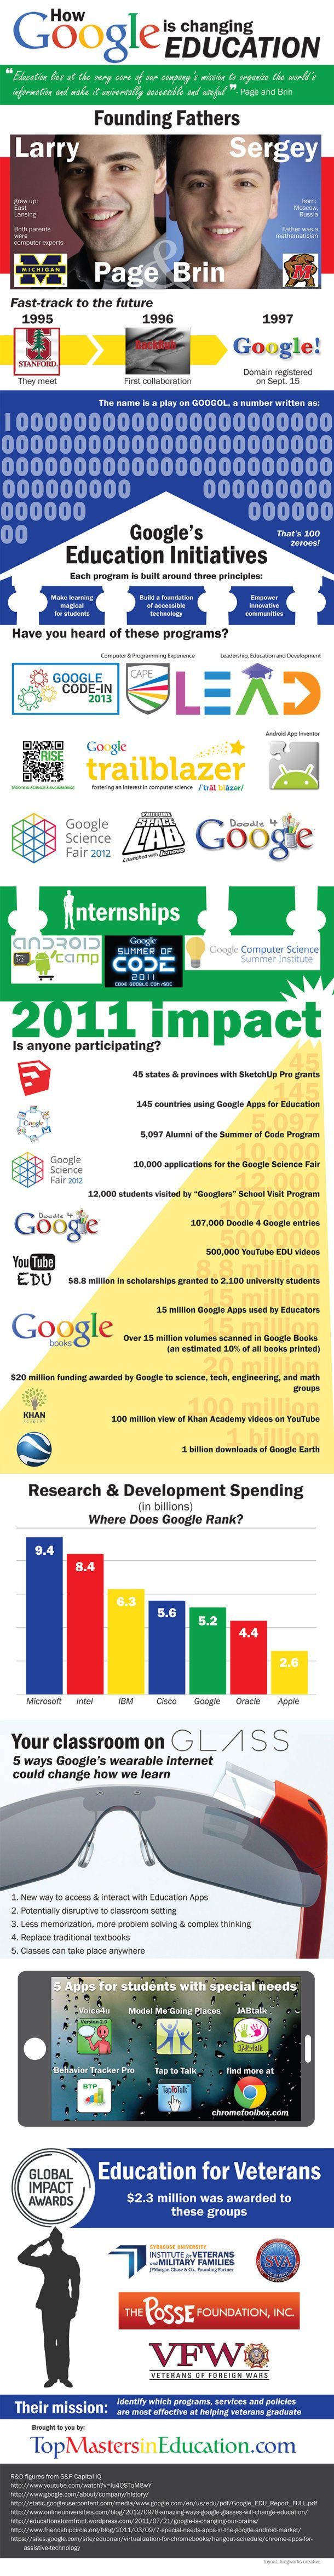 How Google Is Changing Education [INFOGRAPHIC] #Google #education